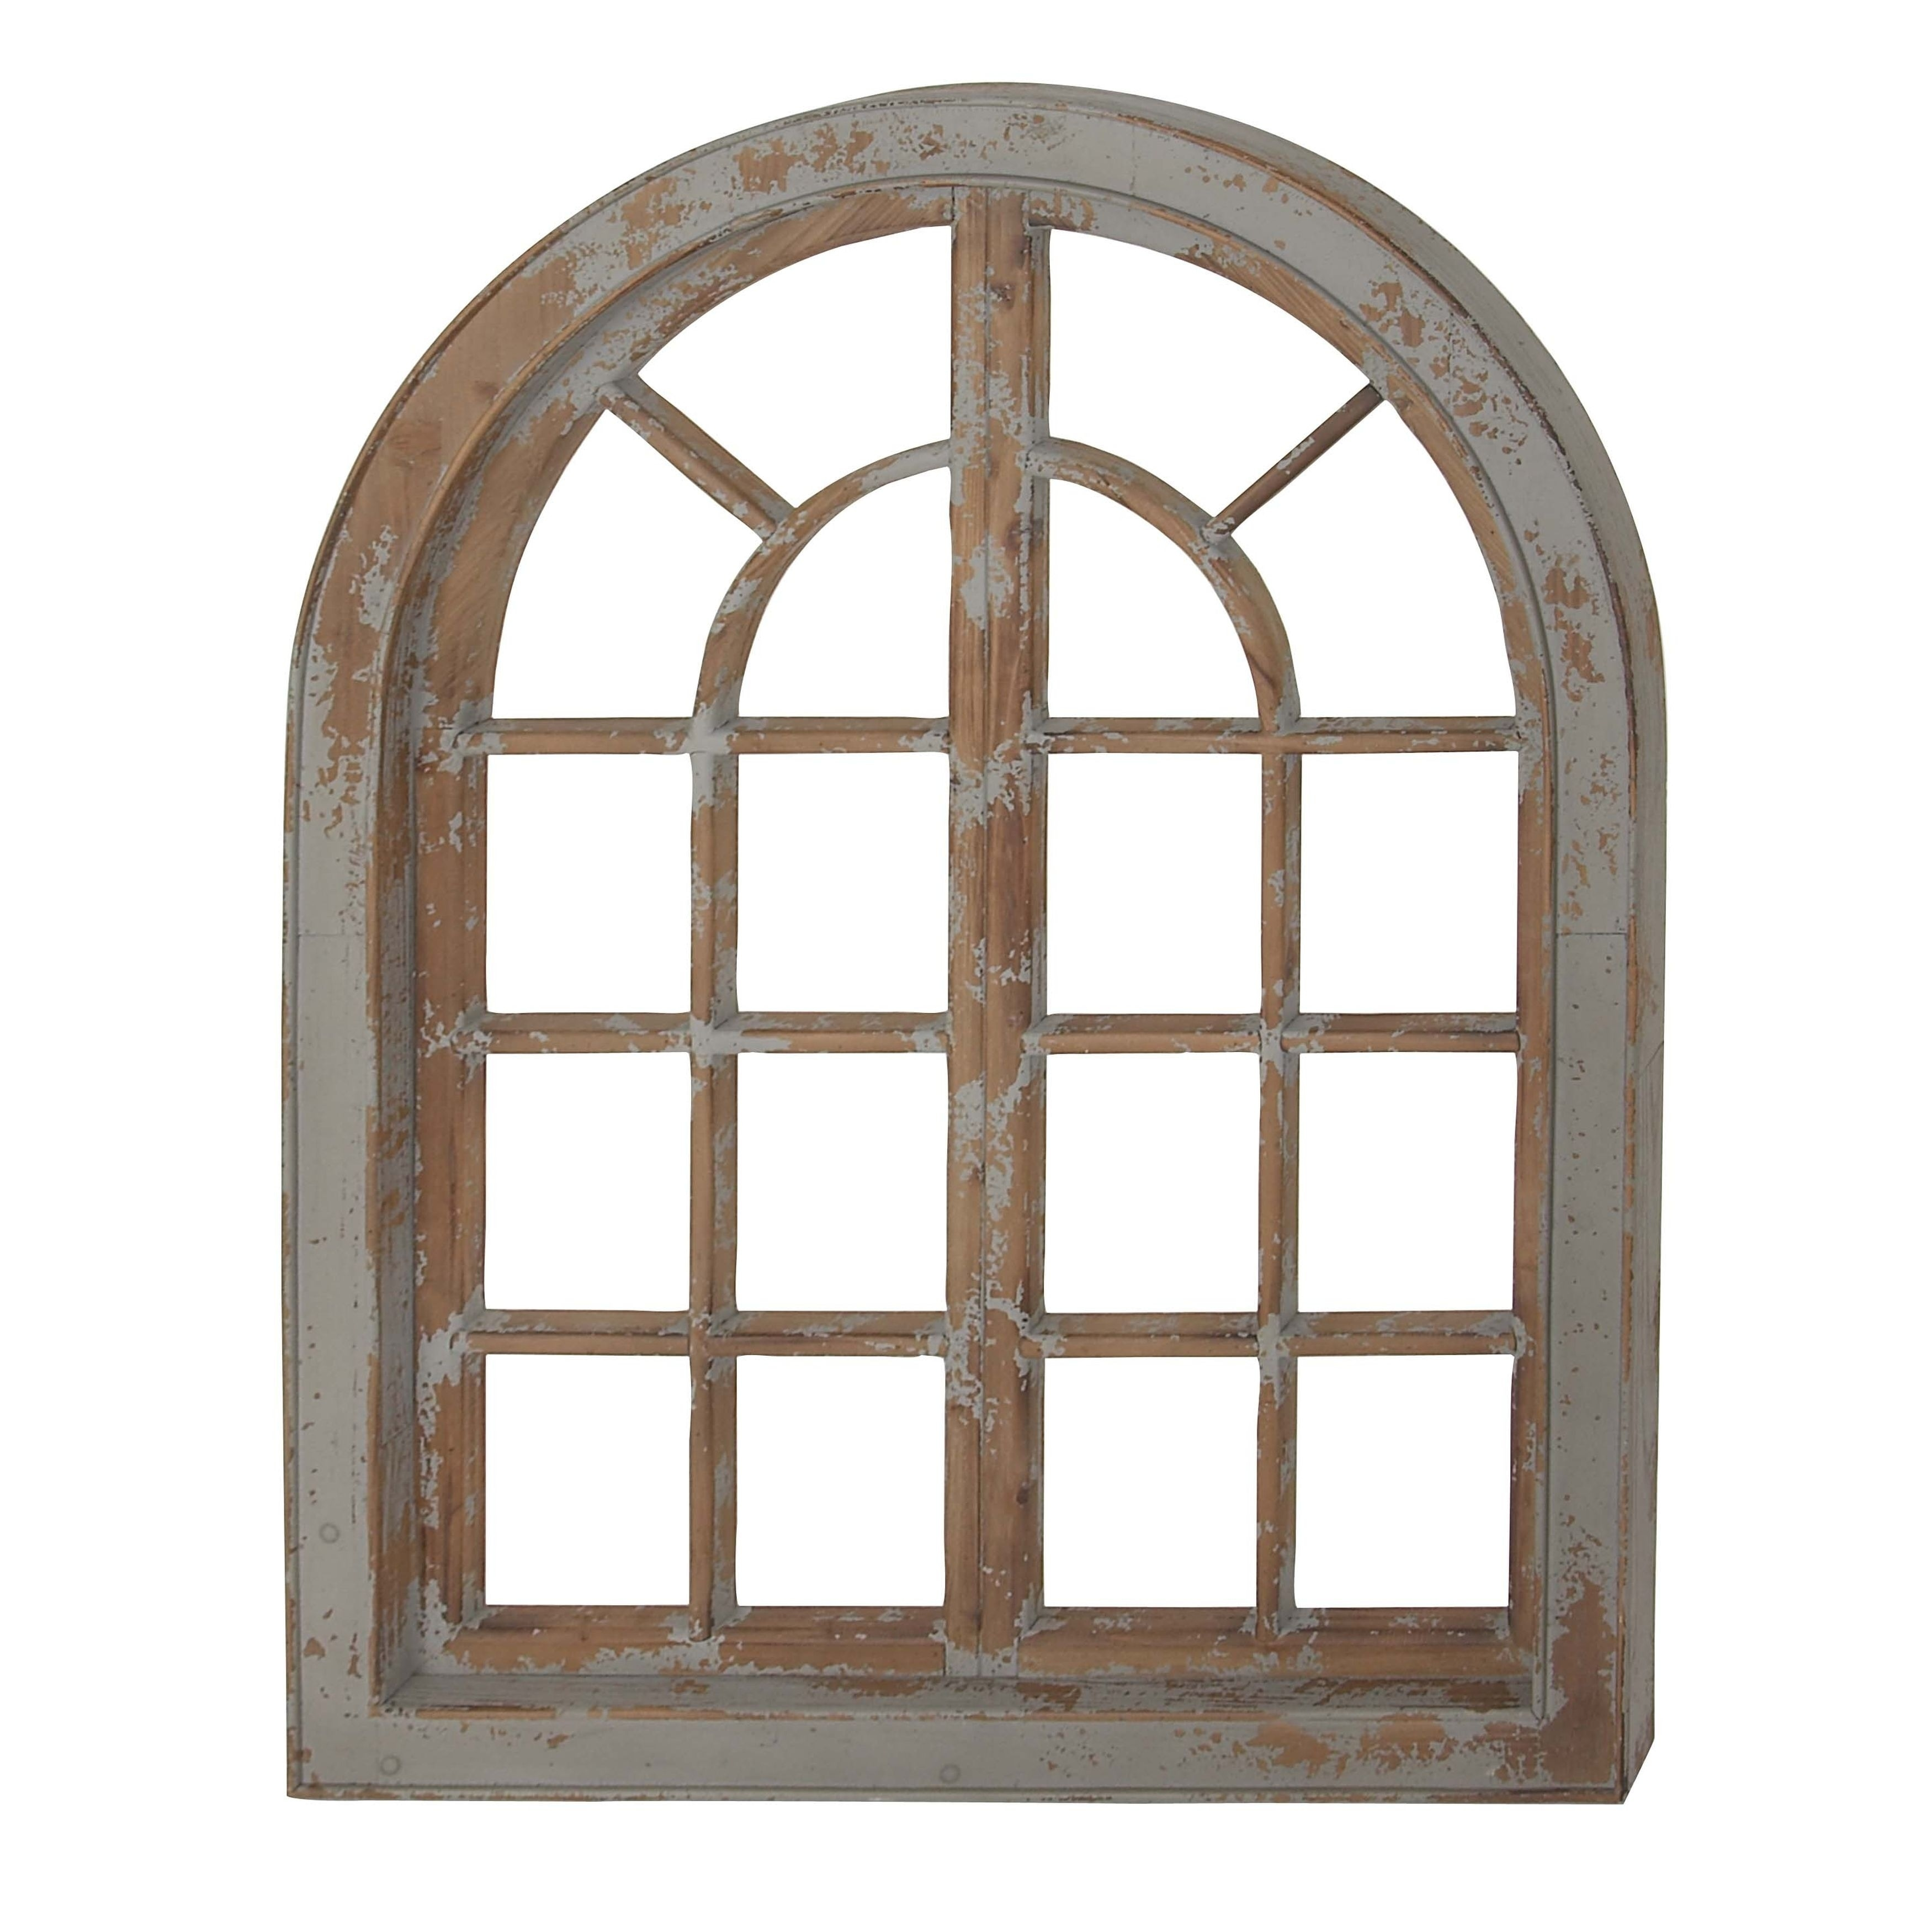 Traditional Arched Wooden Wall Decor Free Shipping Today 19563472